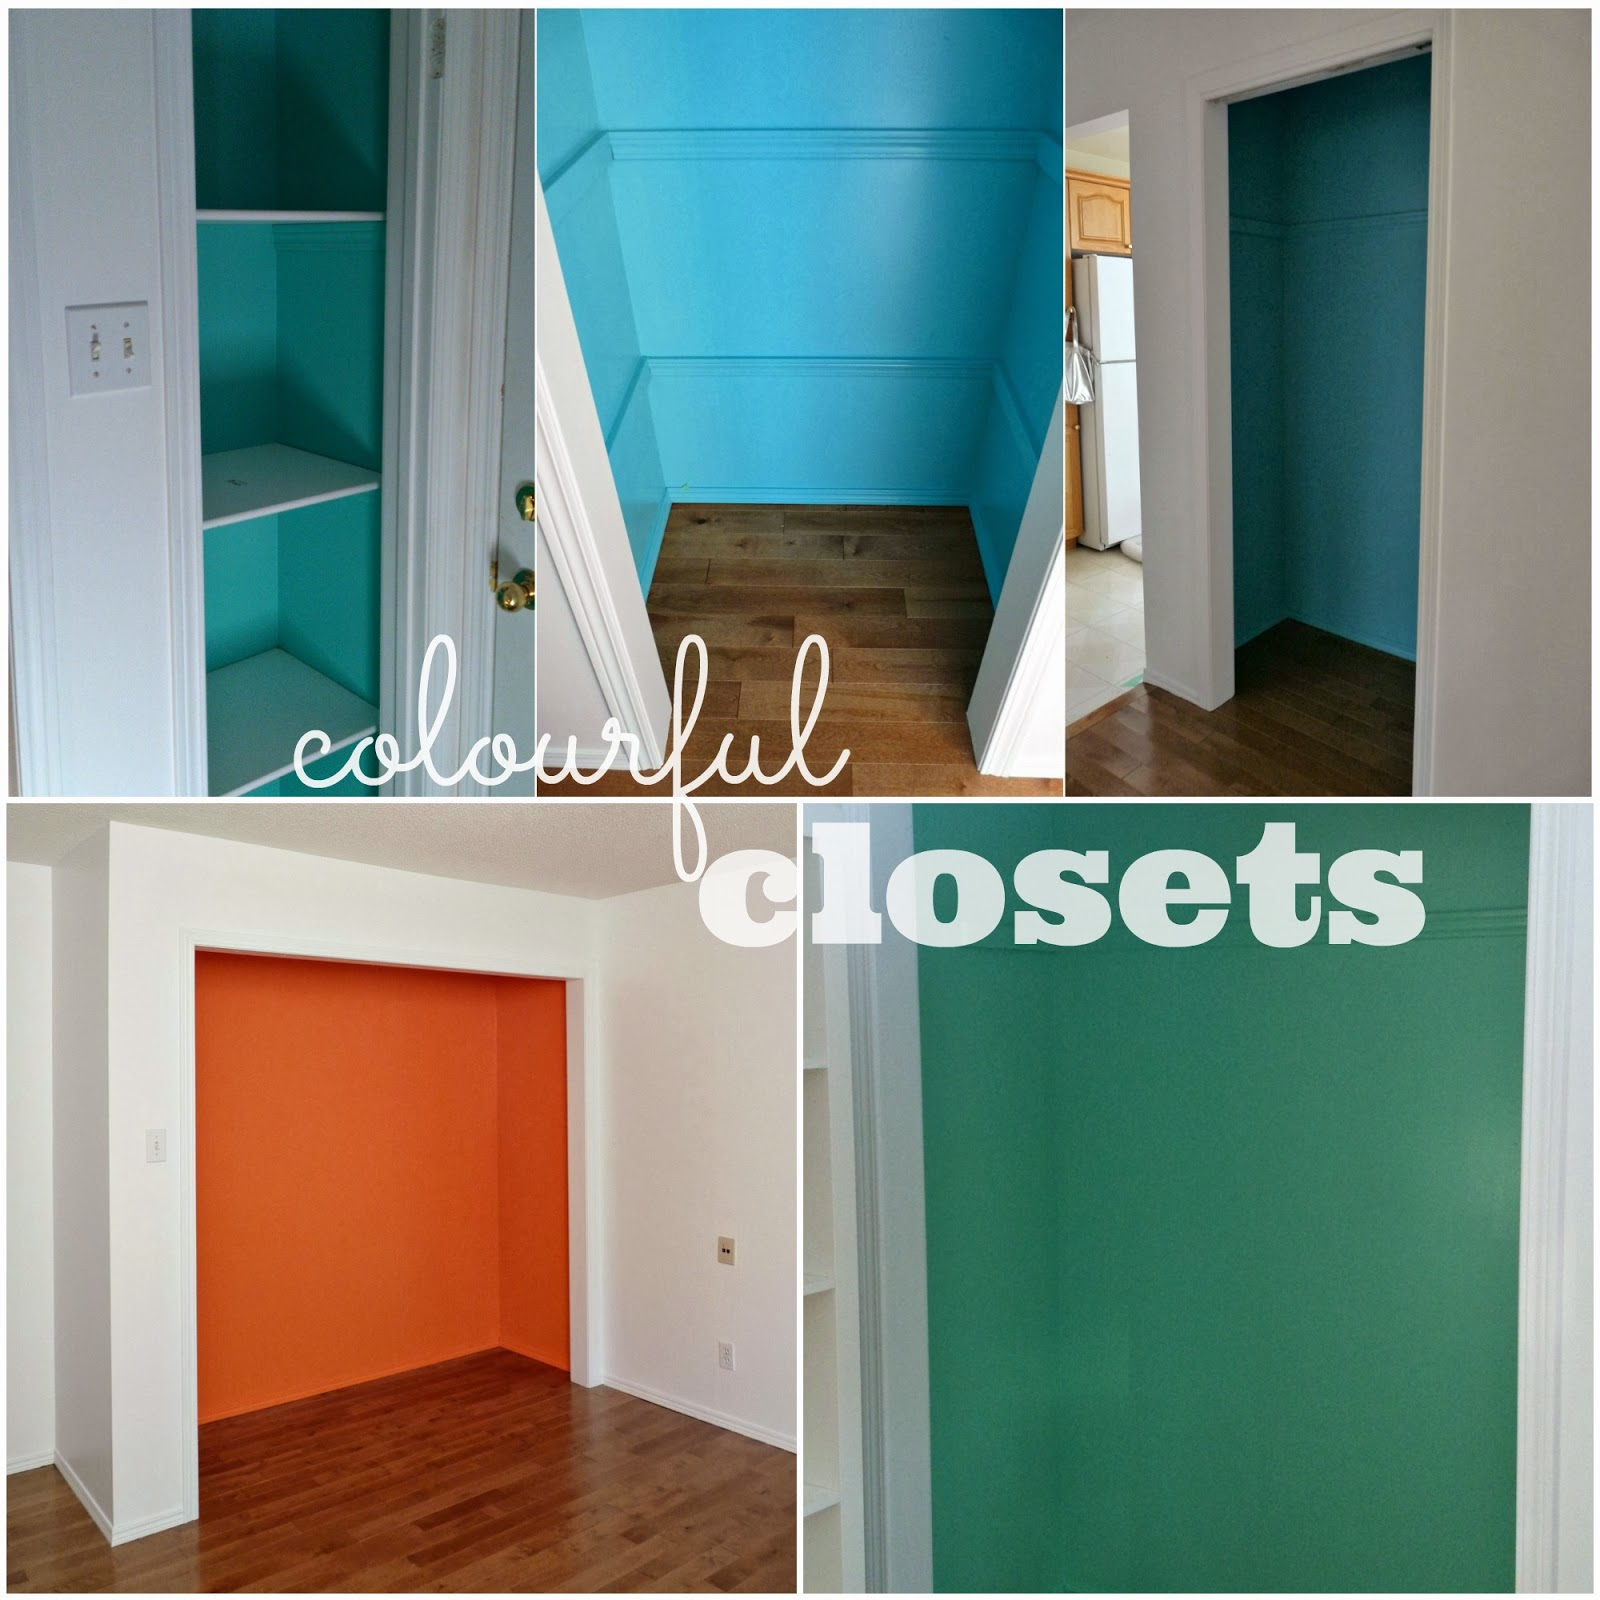 Colourful closets